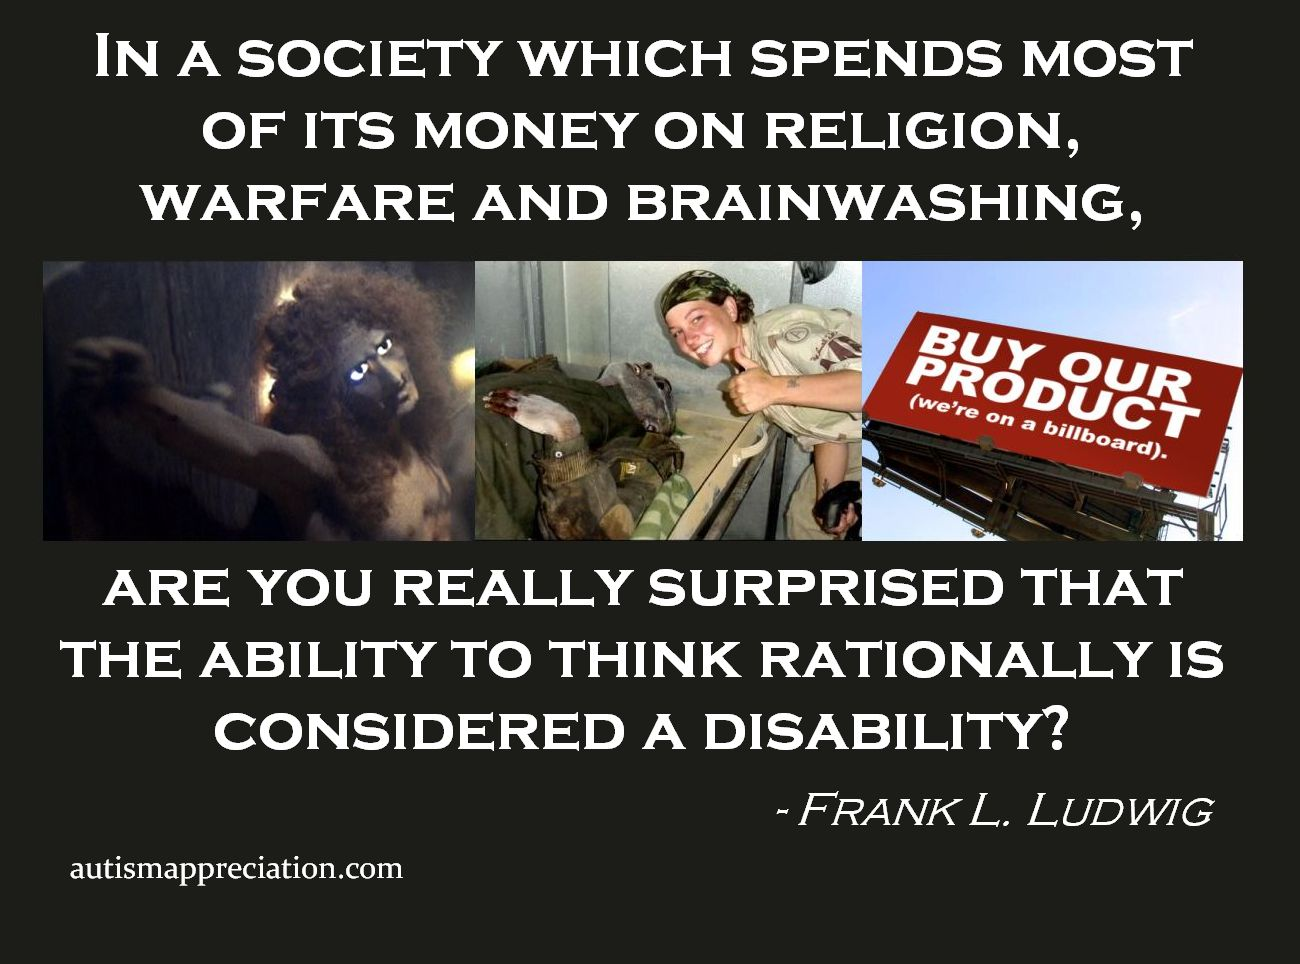 In a society  which spends most of its money on religion, warfare and brainwashing, are you really surprised that the ability to think rationally is considered a disability?